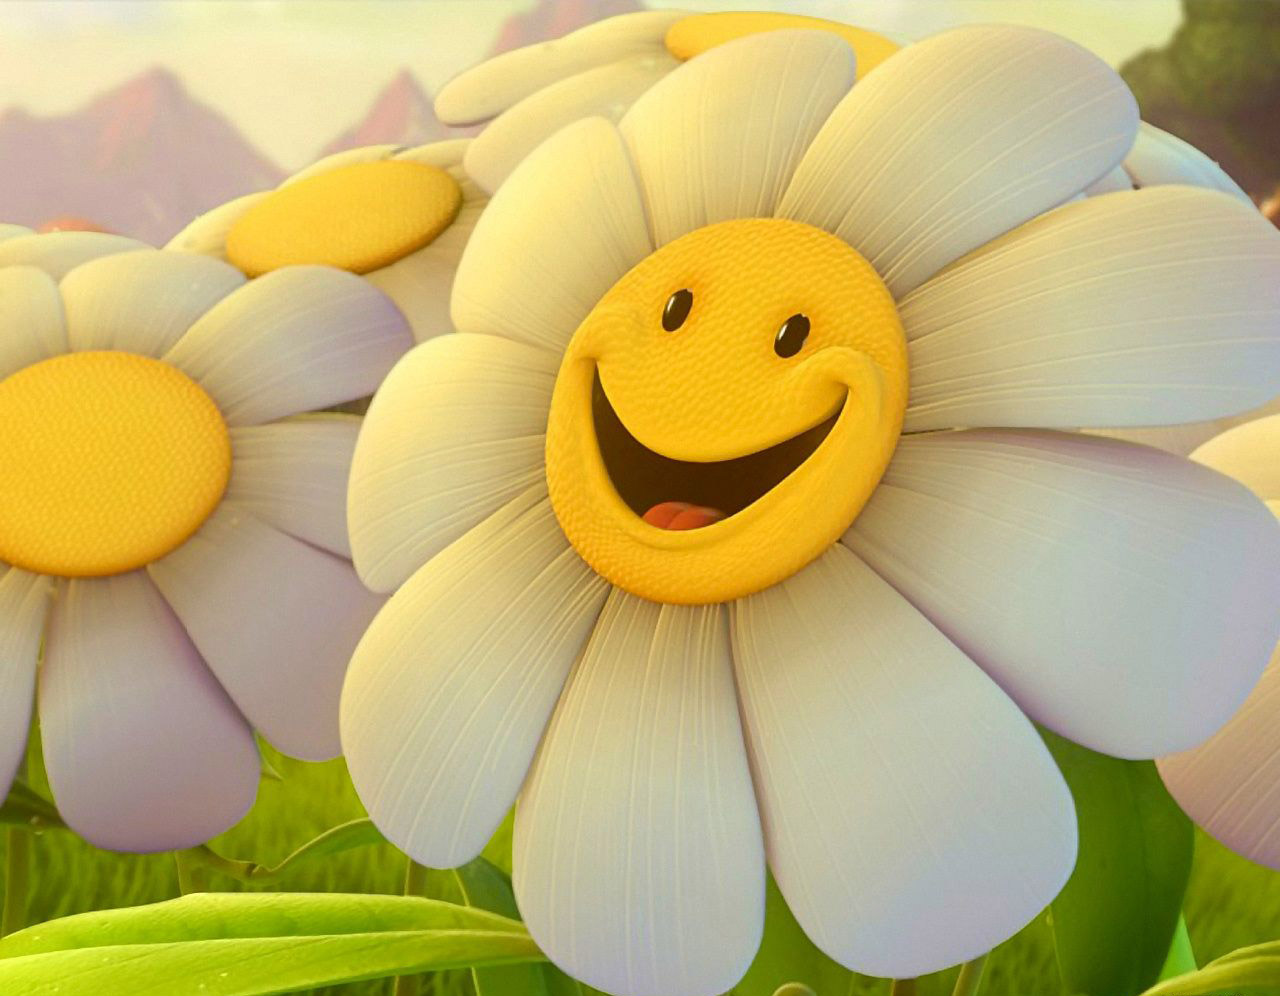 http://4.bp.blogspot.com/_zgyzUSVsgHM/TQneRvKOXhI/AAAAAAAAAB8/mD1d7BsKU8M/s1600/Smiley_Flower_Happy%2521_wallpaper.jpg